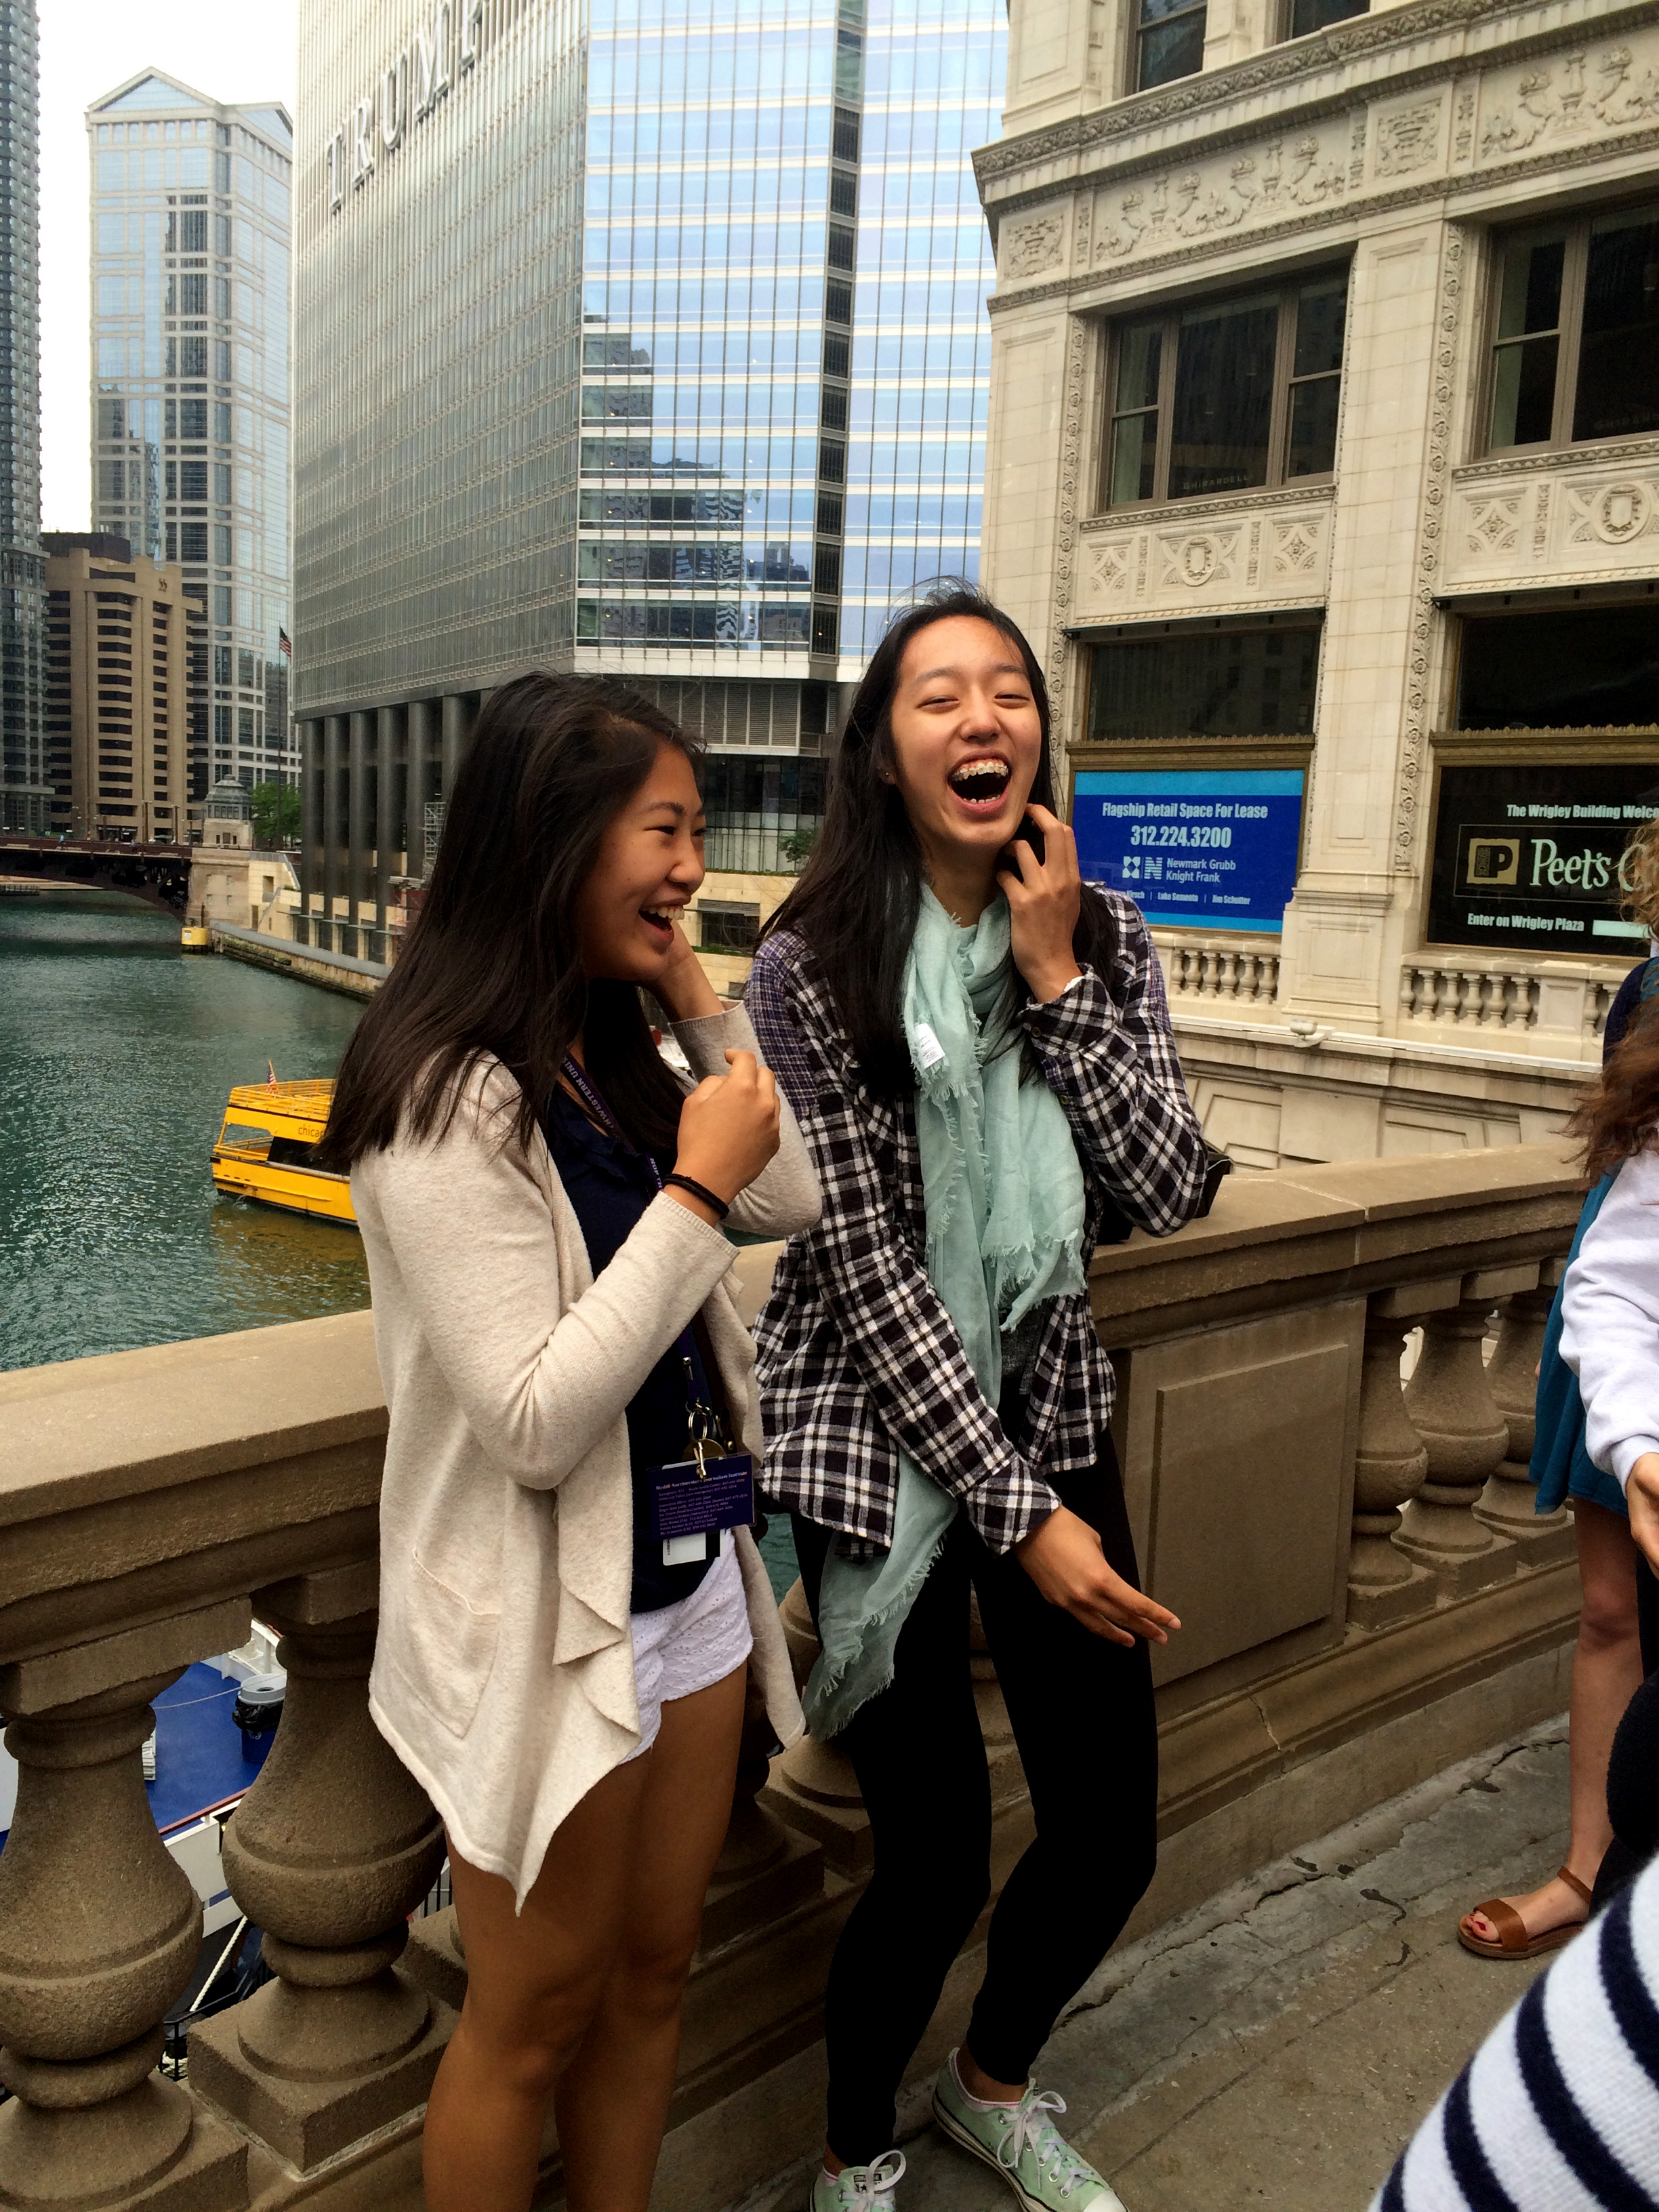 """""""I didn't realize how cool of a city Chicago was before this tour,"""" Courtney Gao of California said. """"The architecture is really different from where I'm from. It's a lot taller and it was really beautiful."""" <br> Caroline Gao (left) Courtney Gao (right) had a great laugh together."""